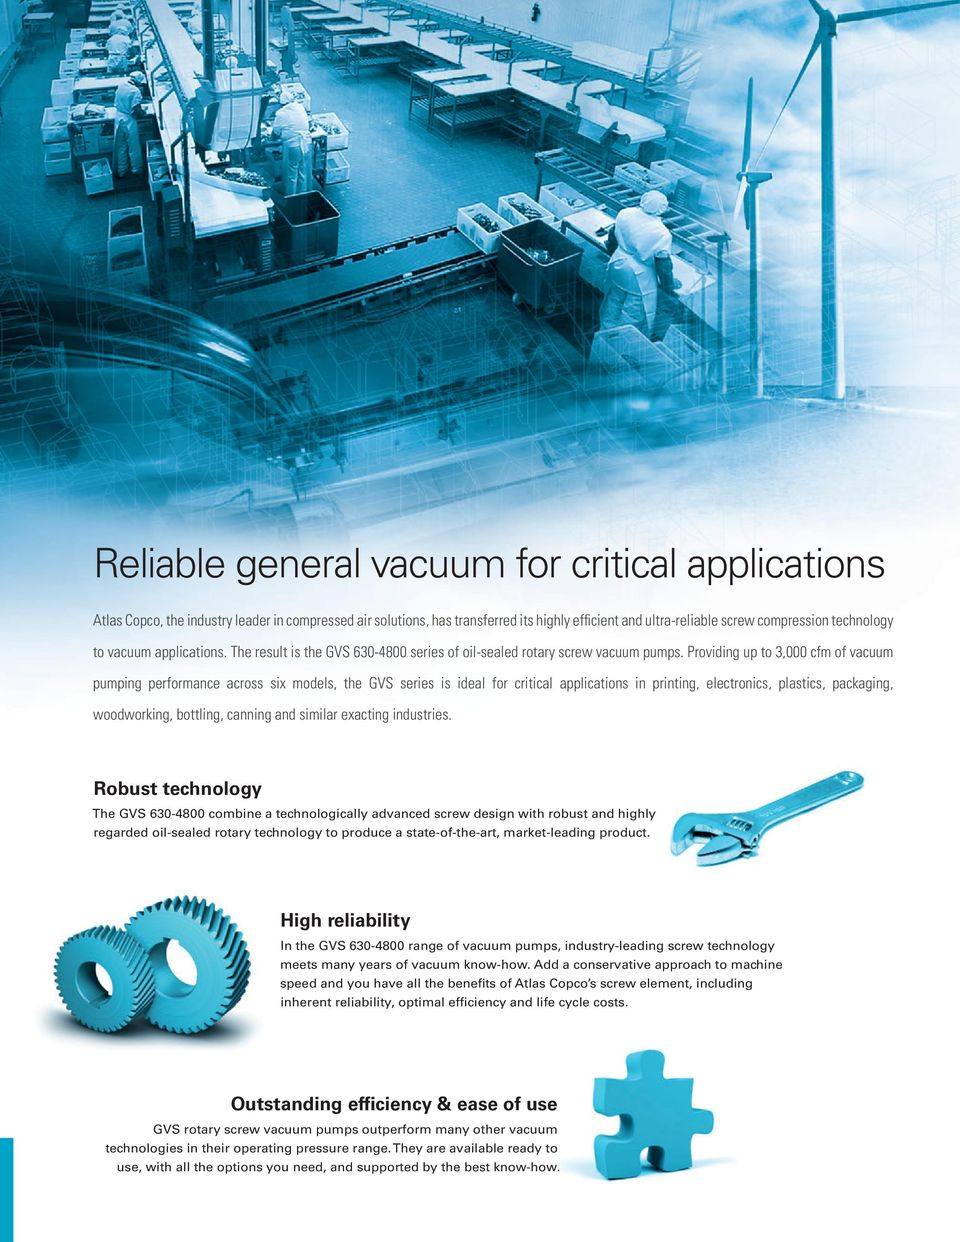 Providing up to 3,000 cfm of vacuum pumping performance across six models, the GVS series is ideal for critical applications in printing, electronics, plastics, packaging, woodworking, bottling,